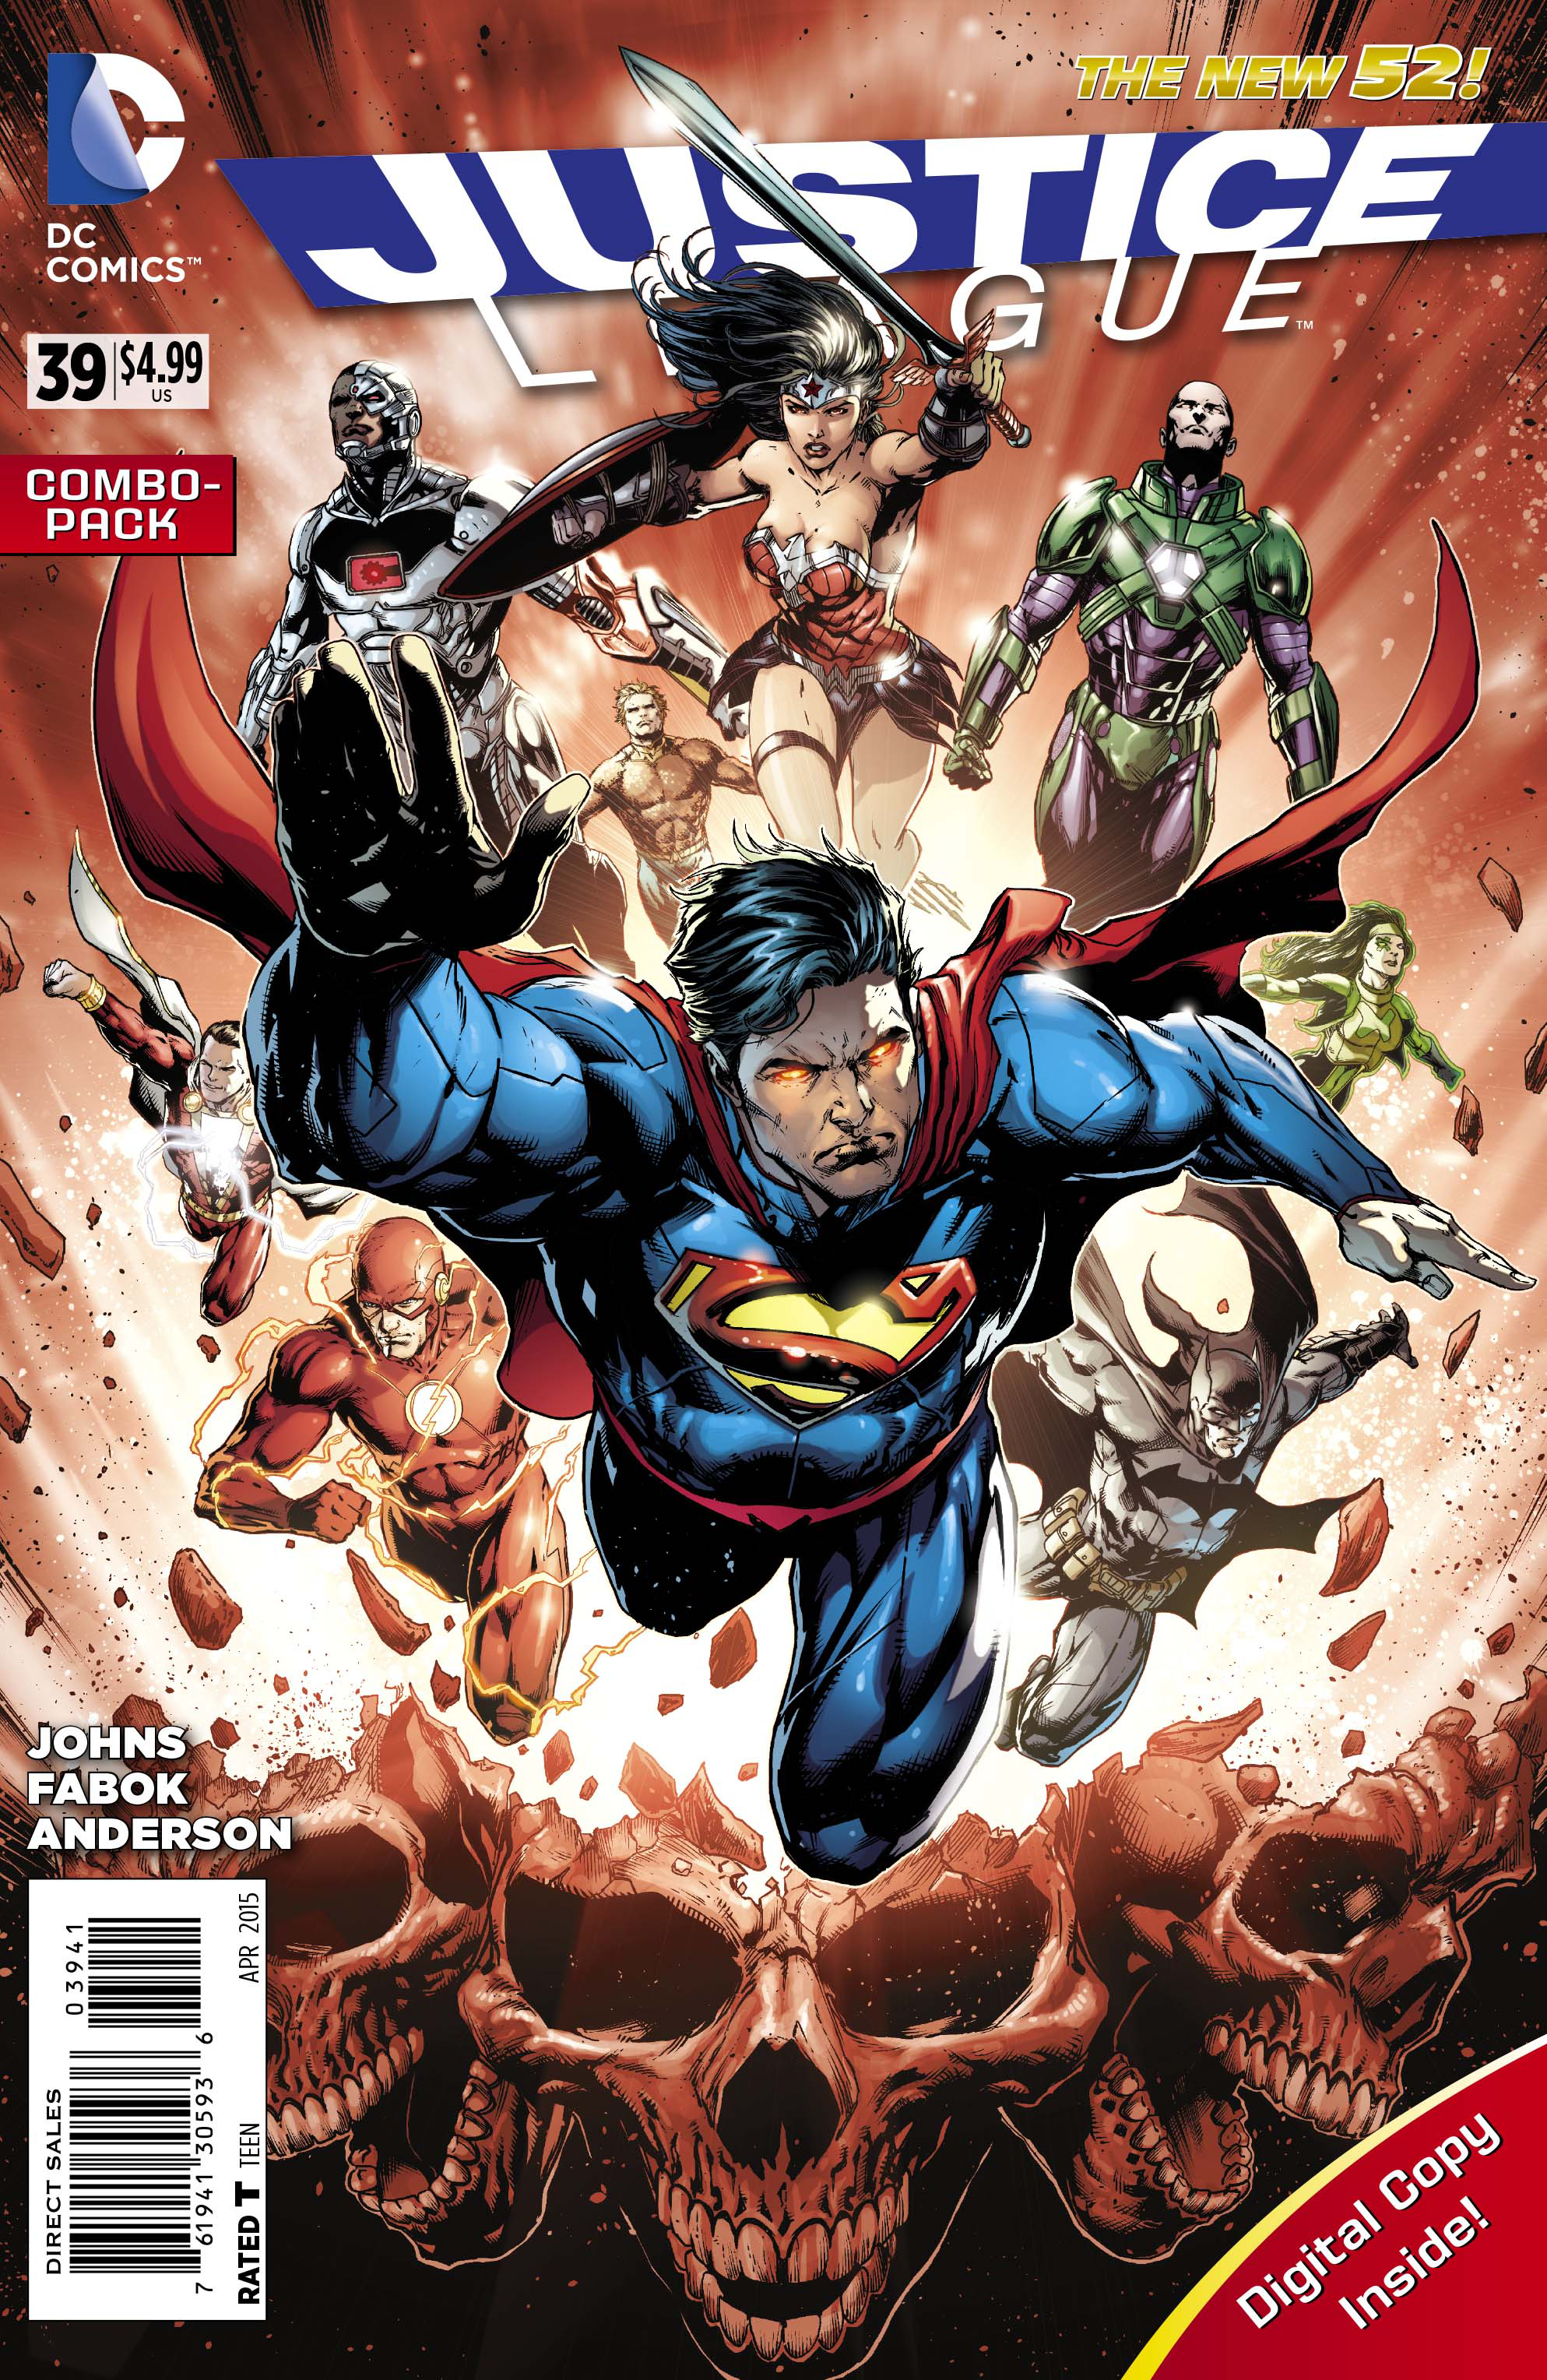 JUSTICE LEAGUE #39 COMBO PACK